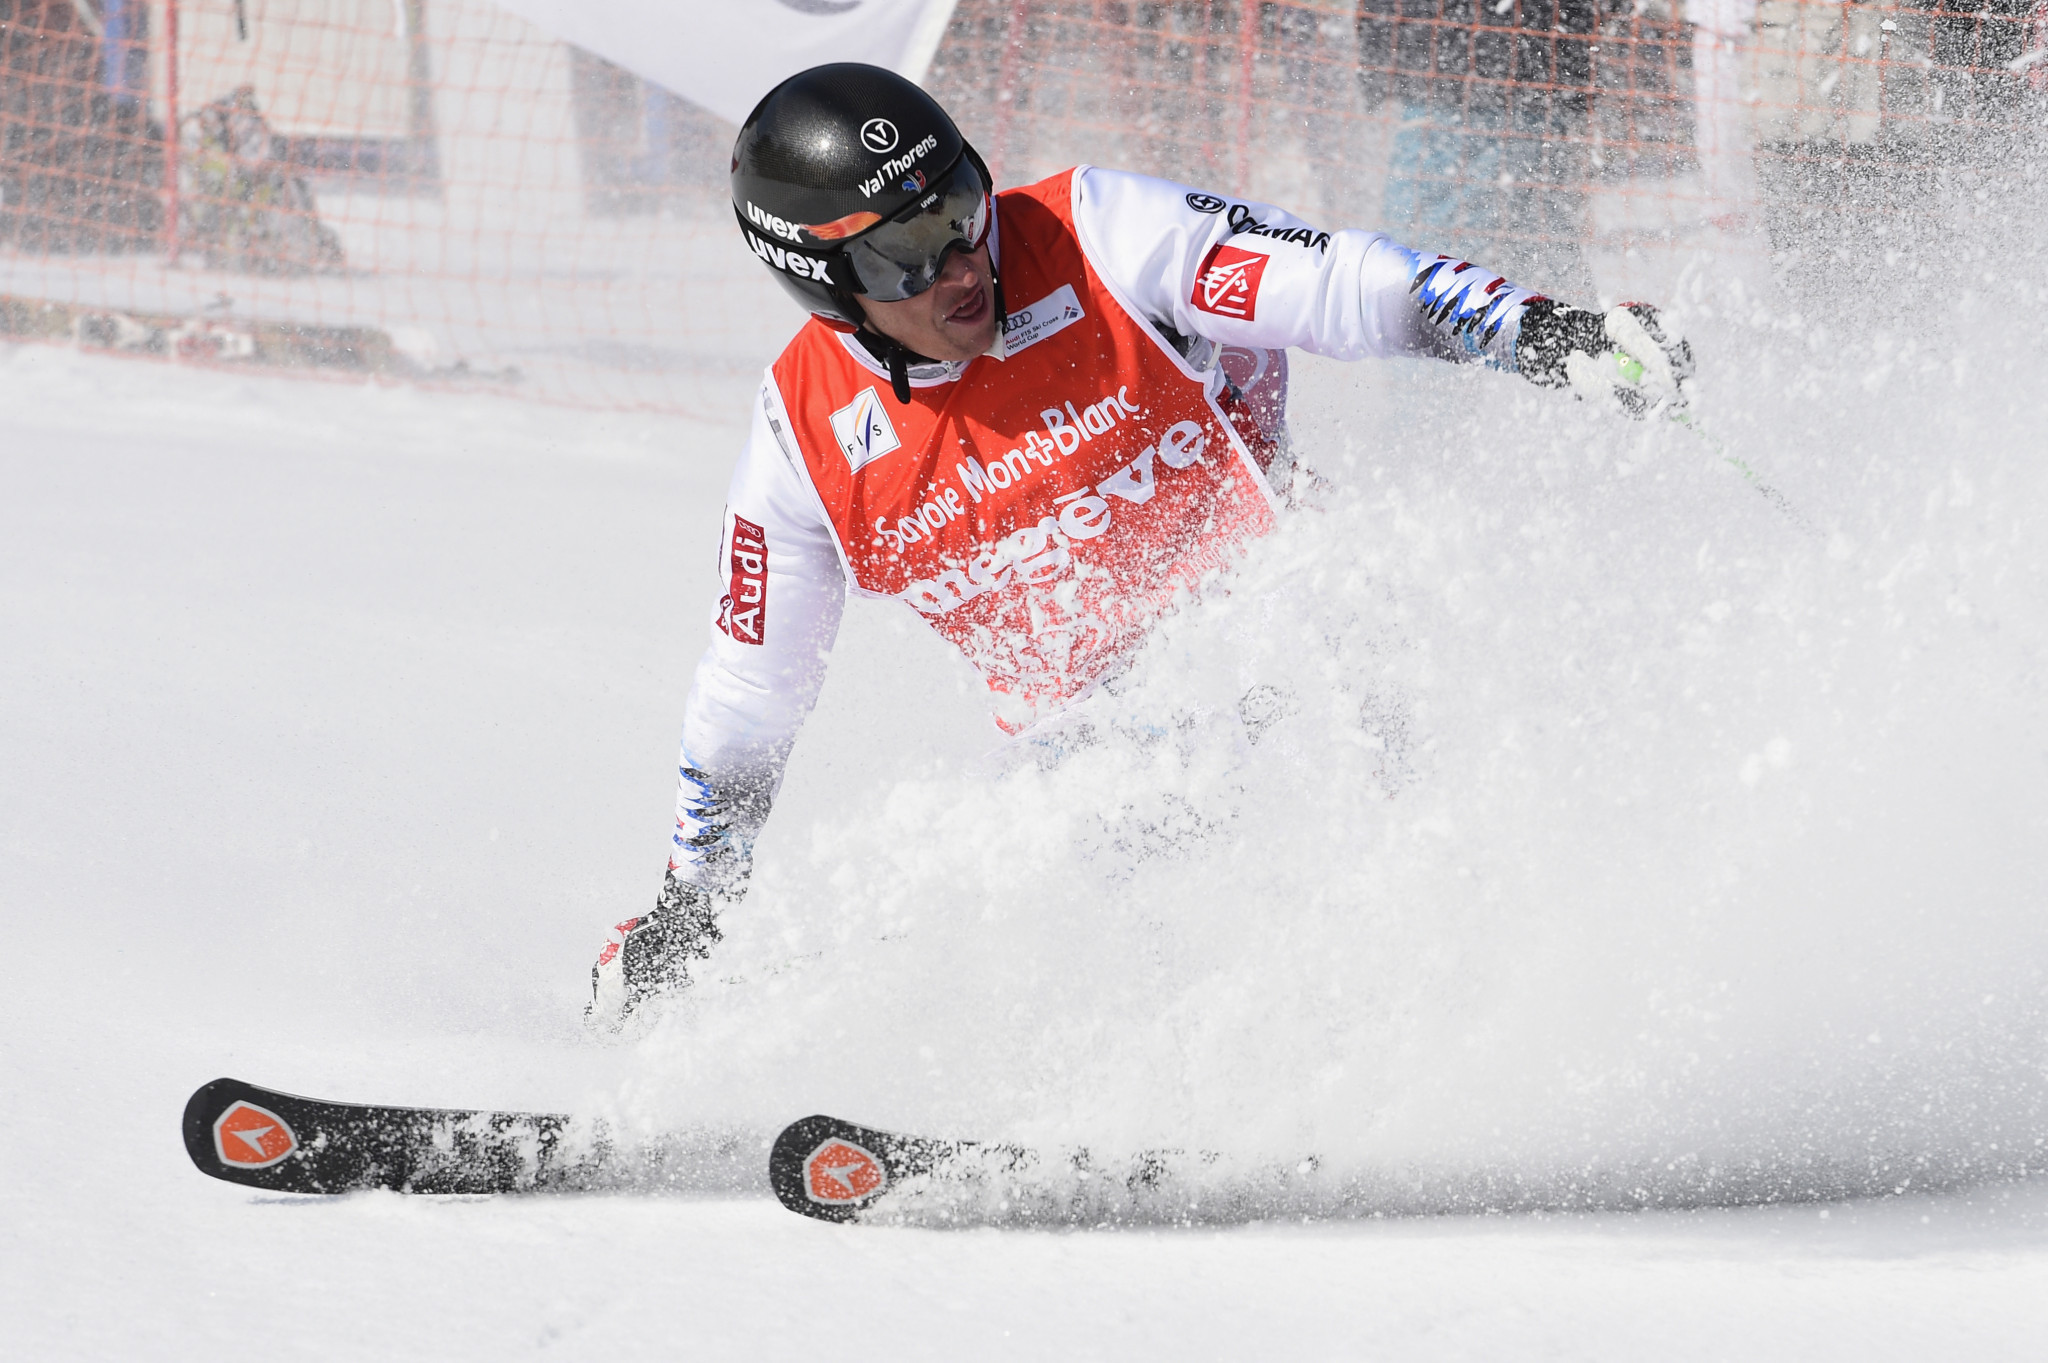 Chapuis aims for home success to begin Ski Cross World Cup defence